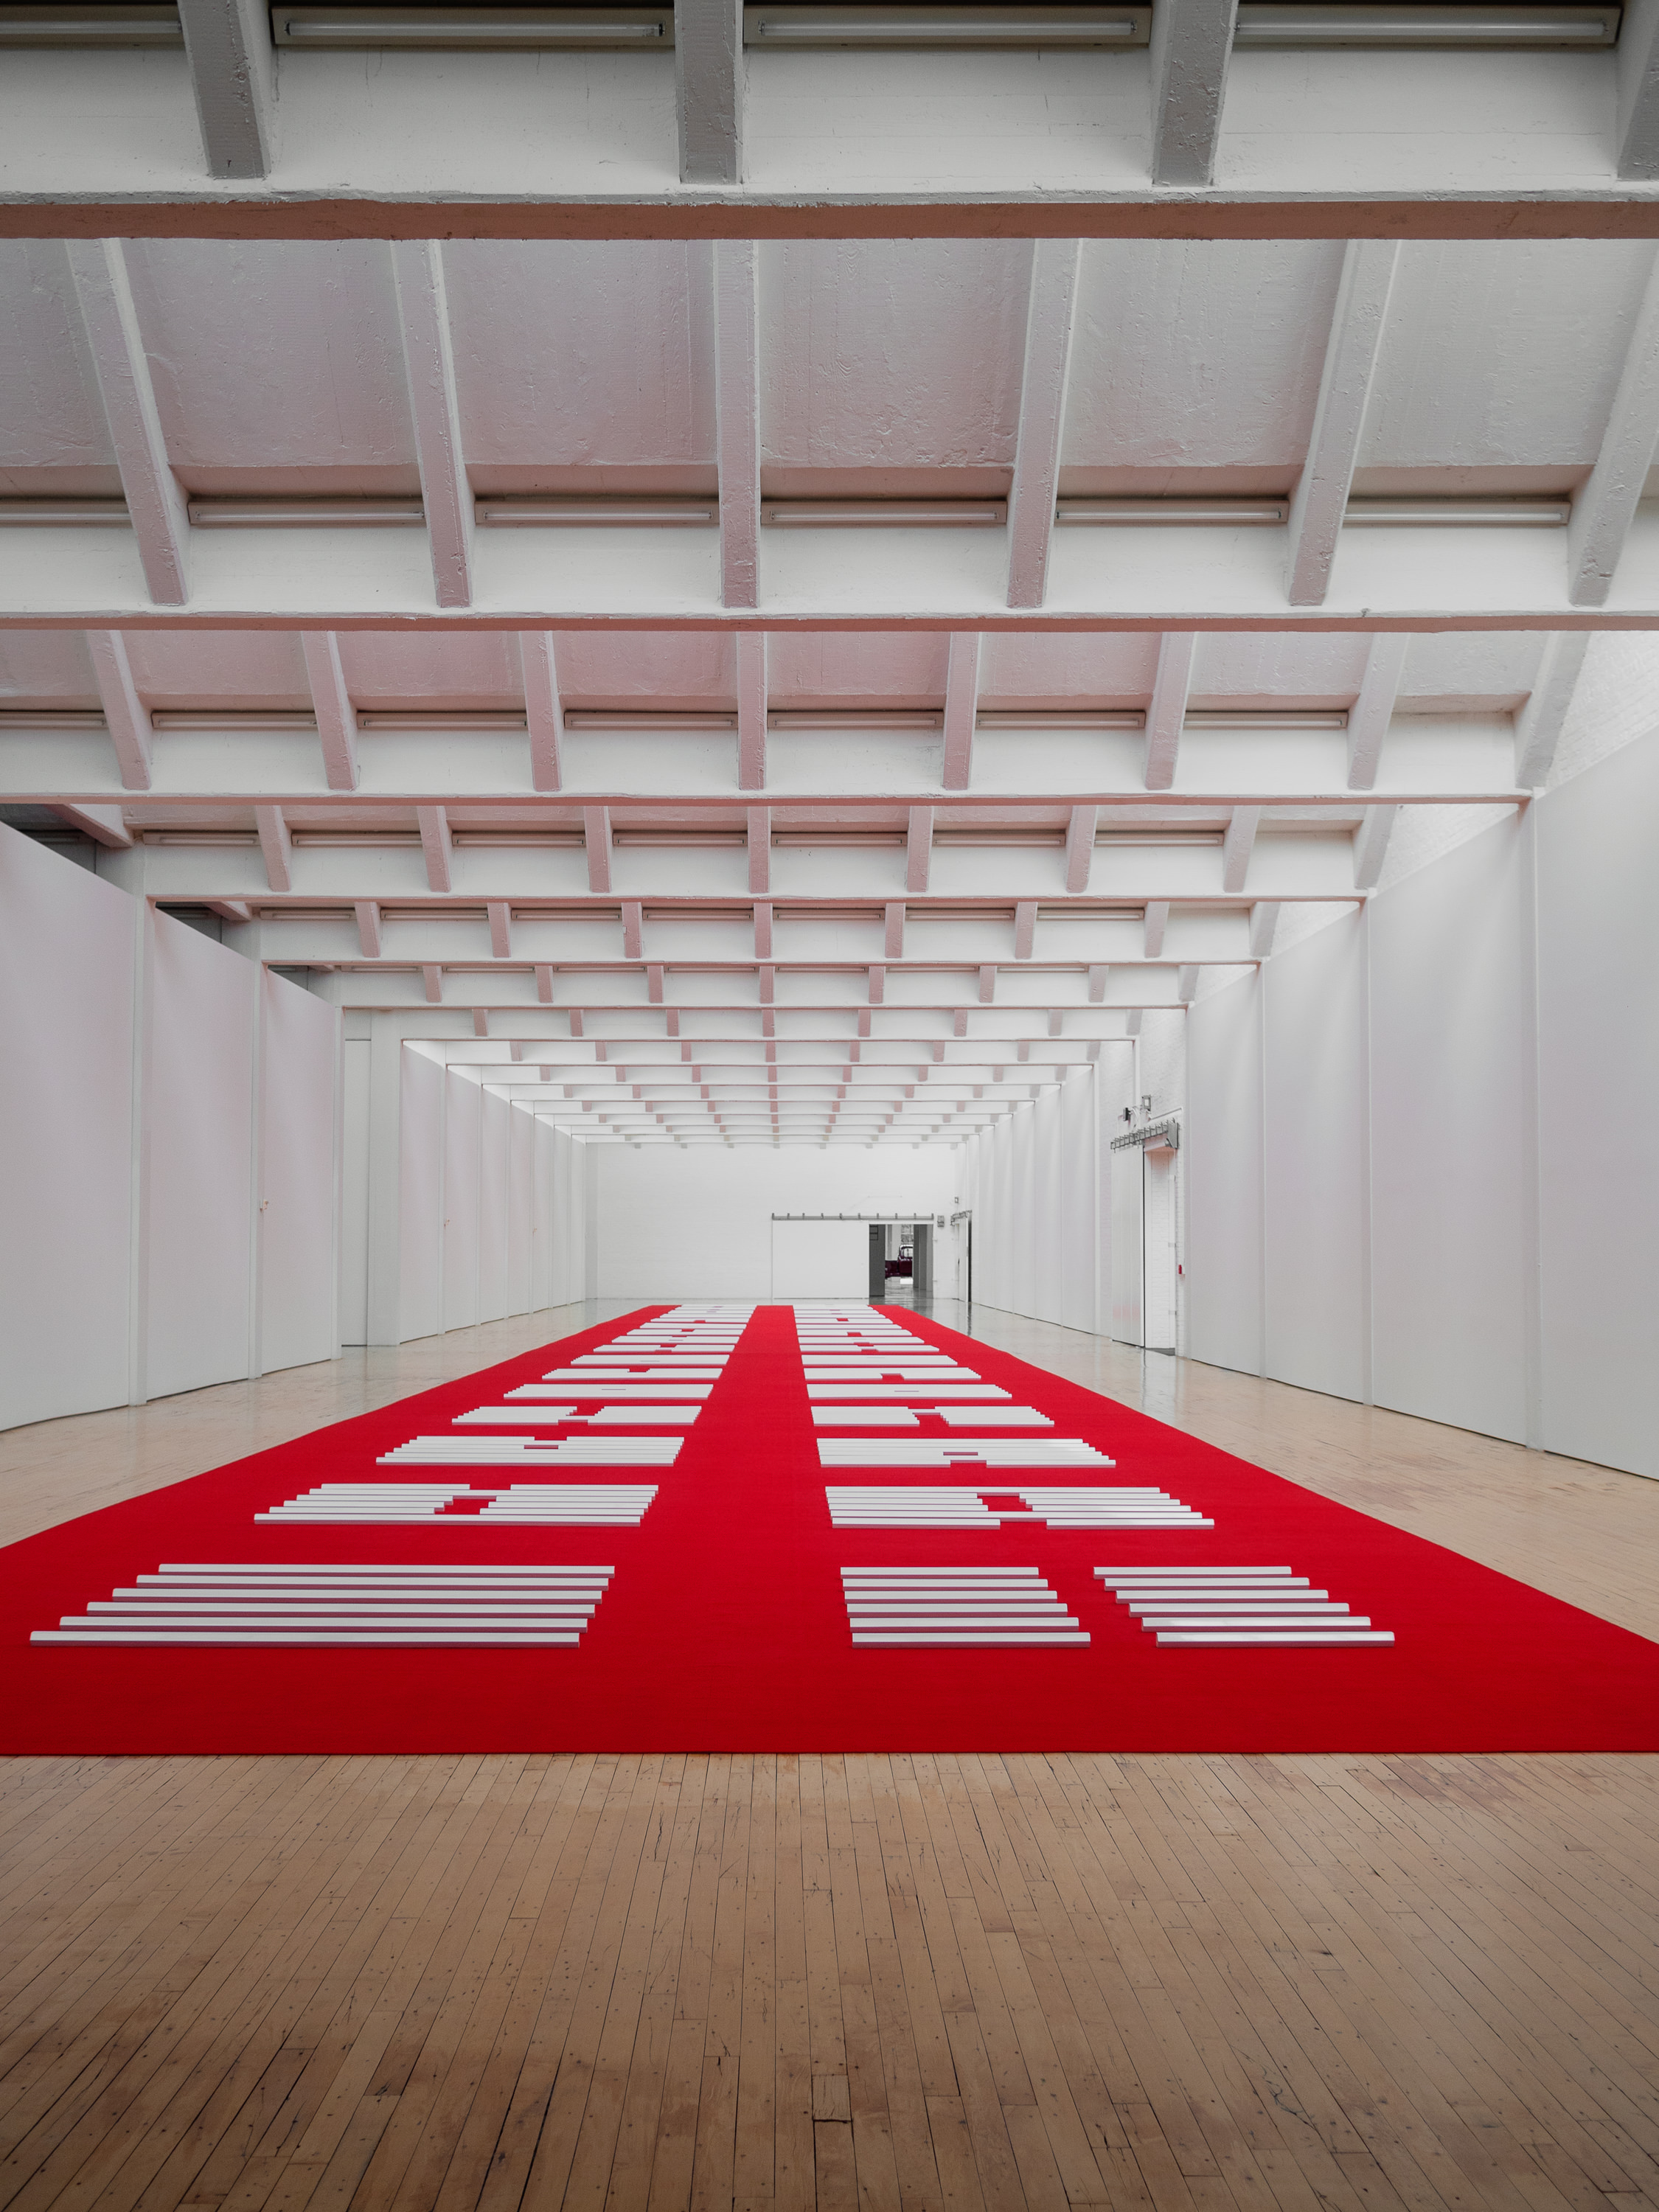 The red carpet experience by Walter De Maria.